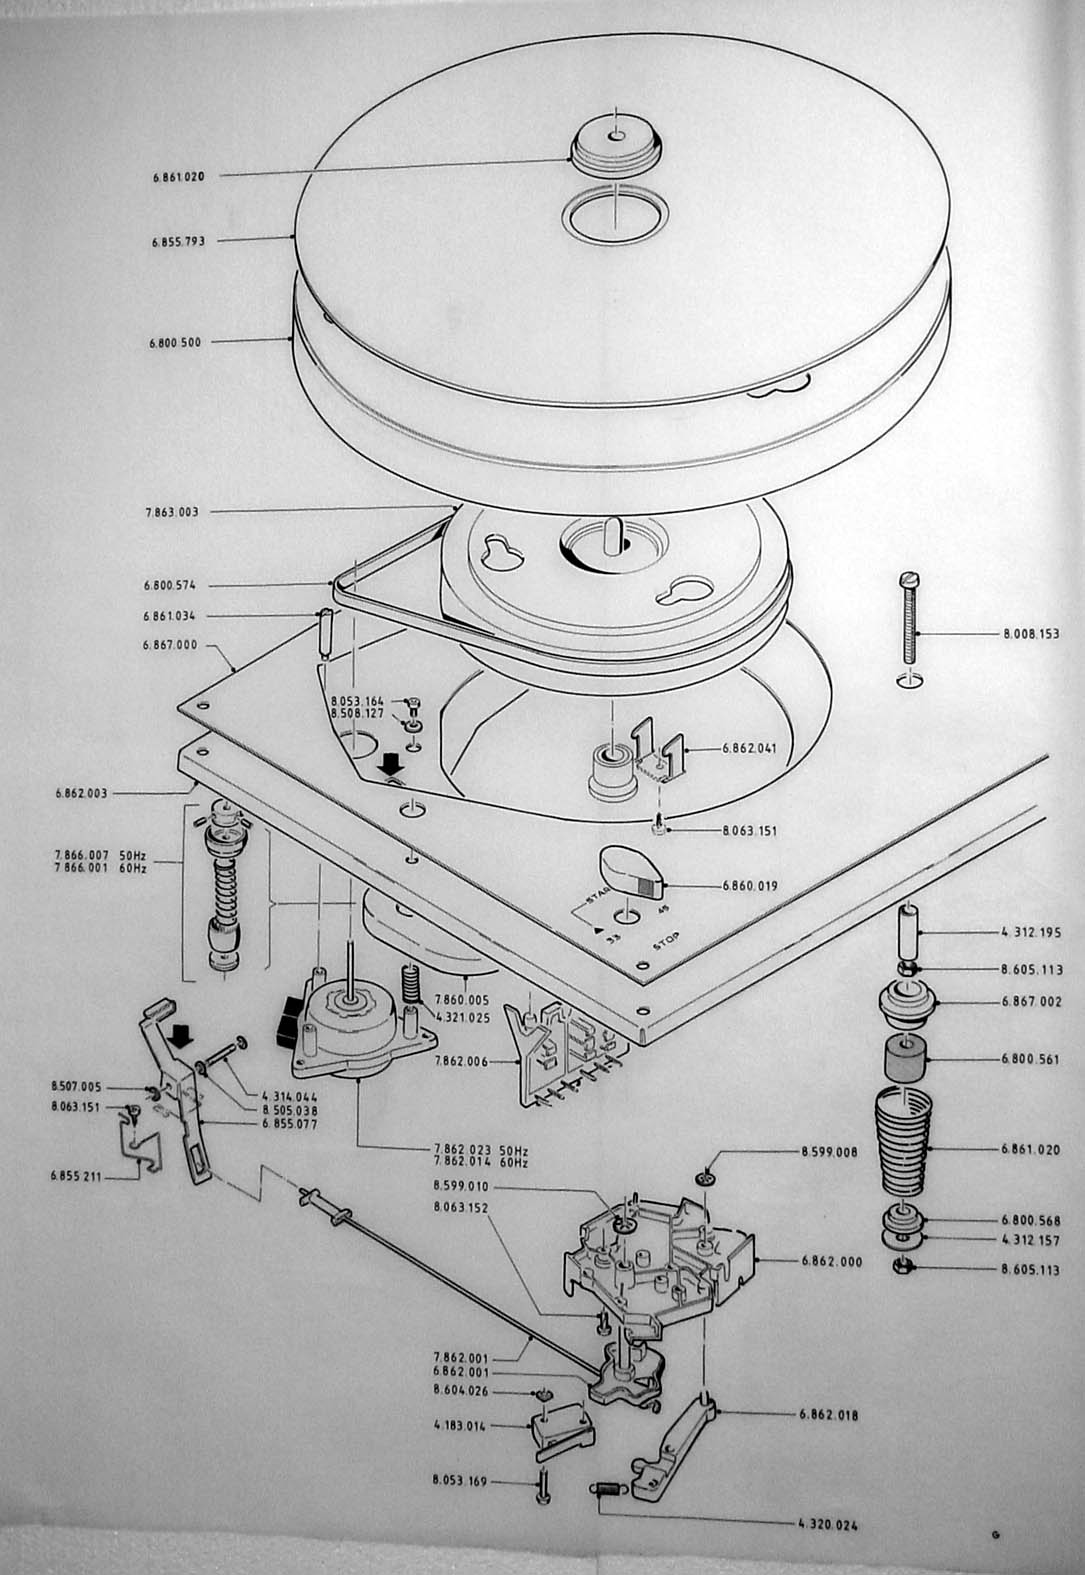 motor schematic thorens factory drawings  thorens factory drawings